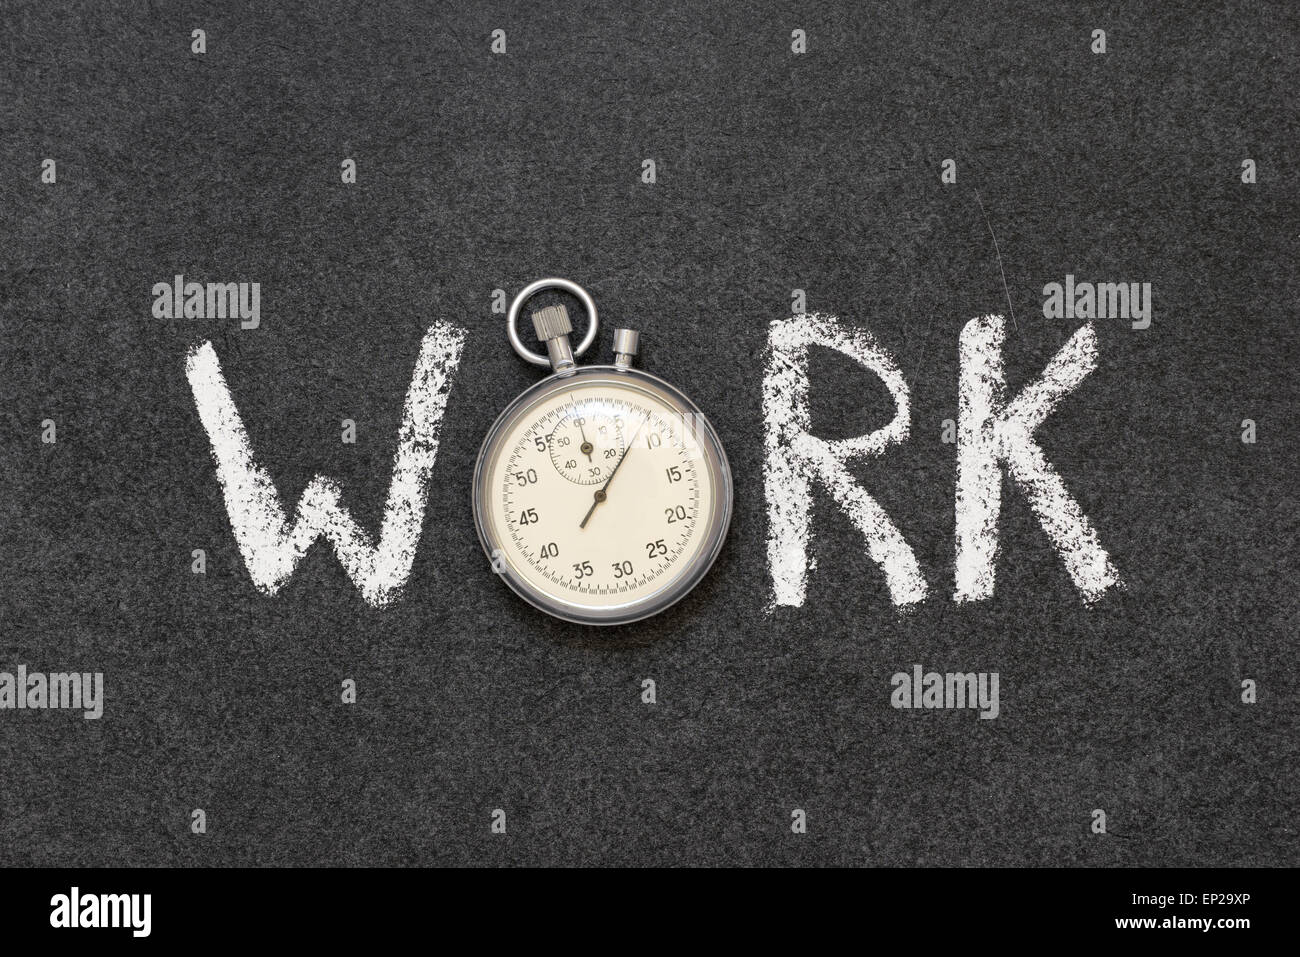 work word handwritten on chalkboard with vintage precise stopwatch used instead of O - Stock Image